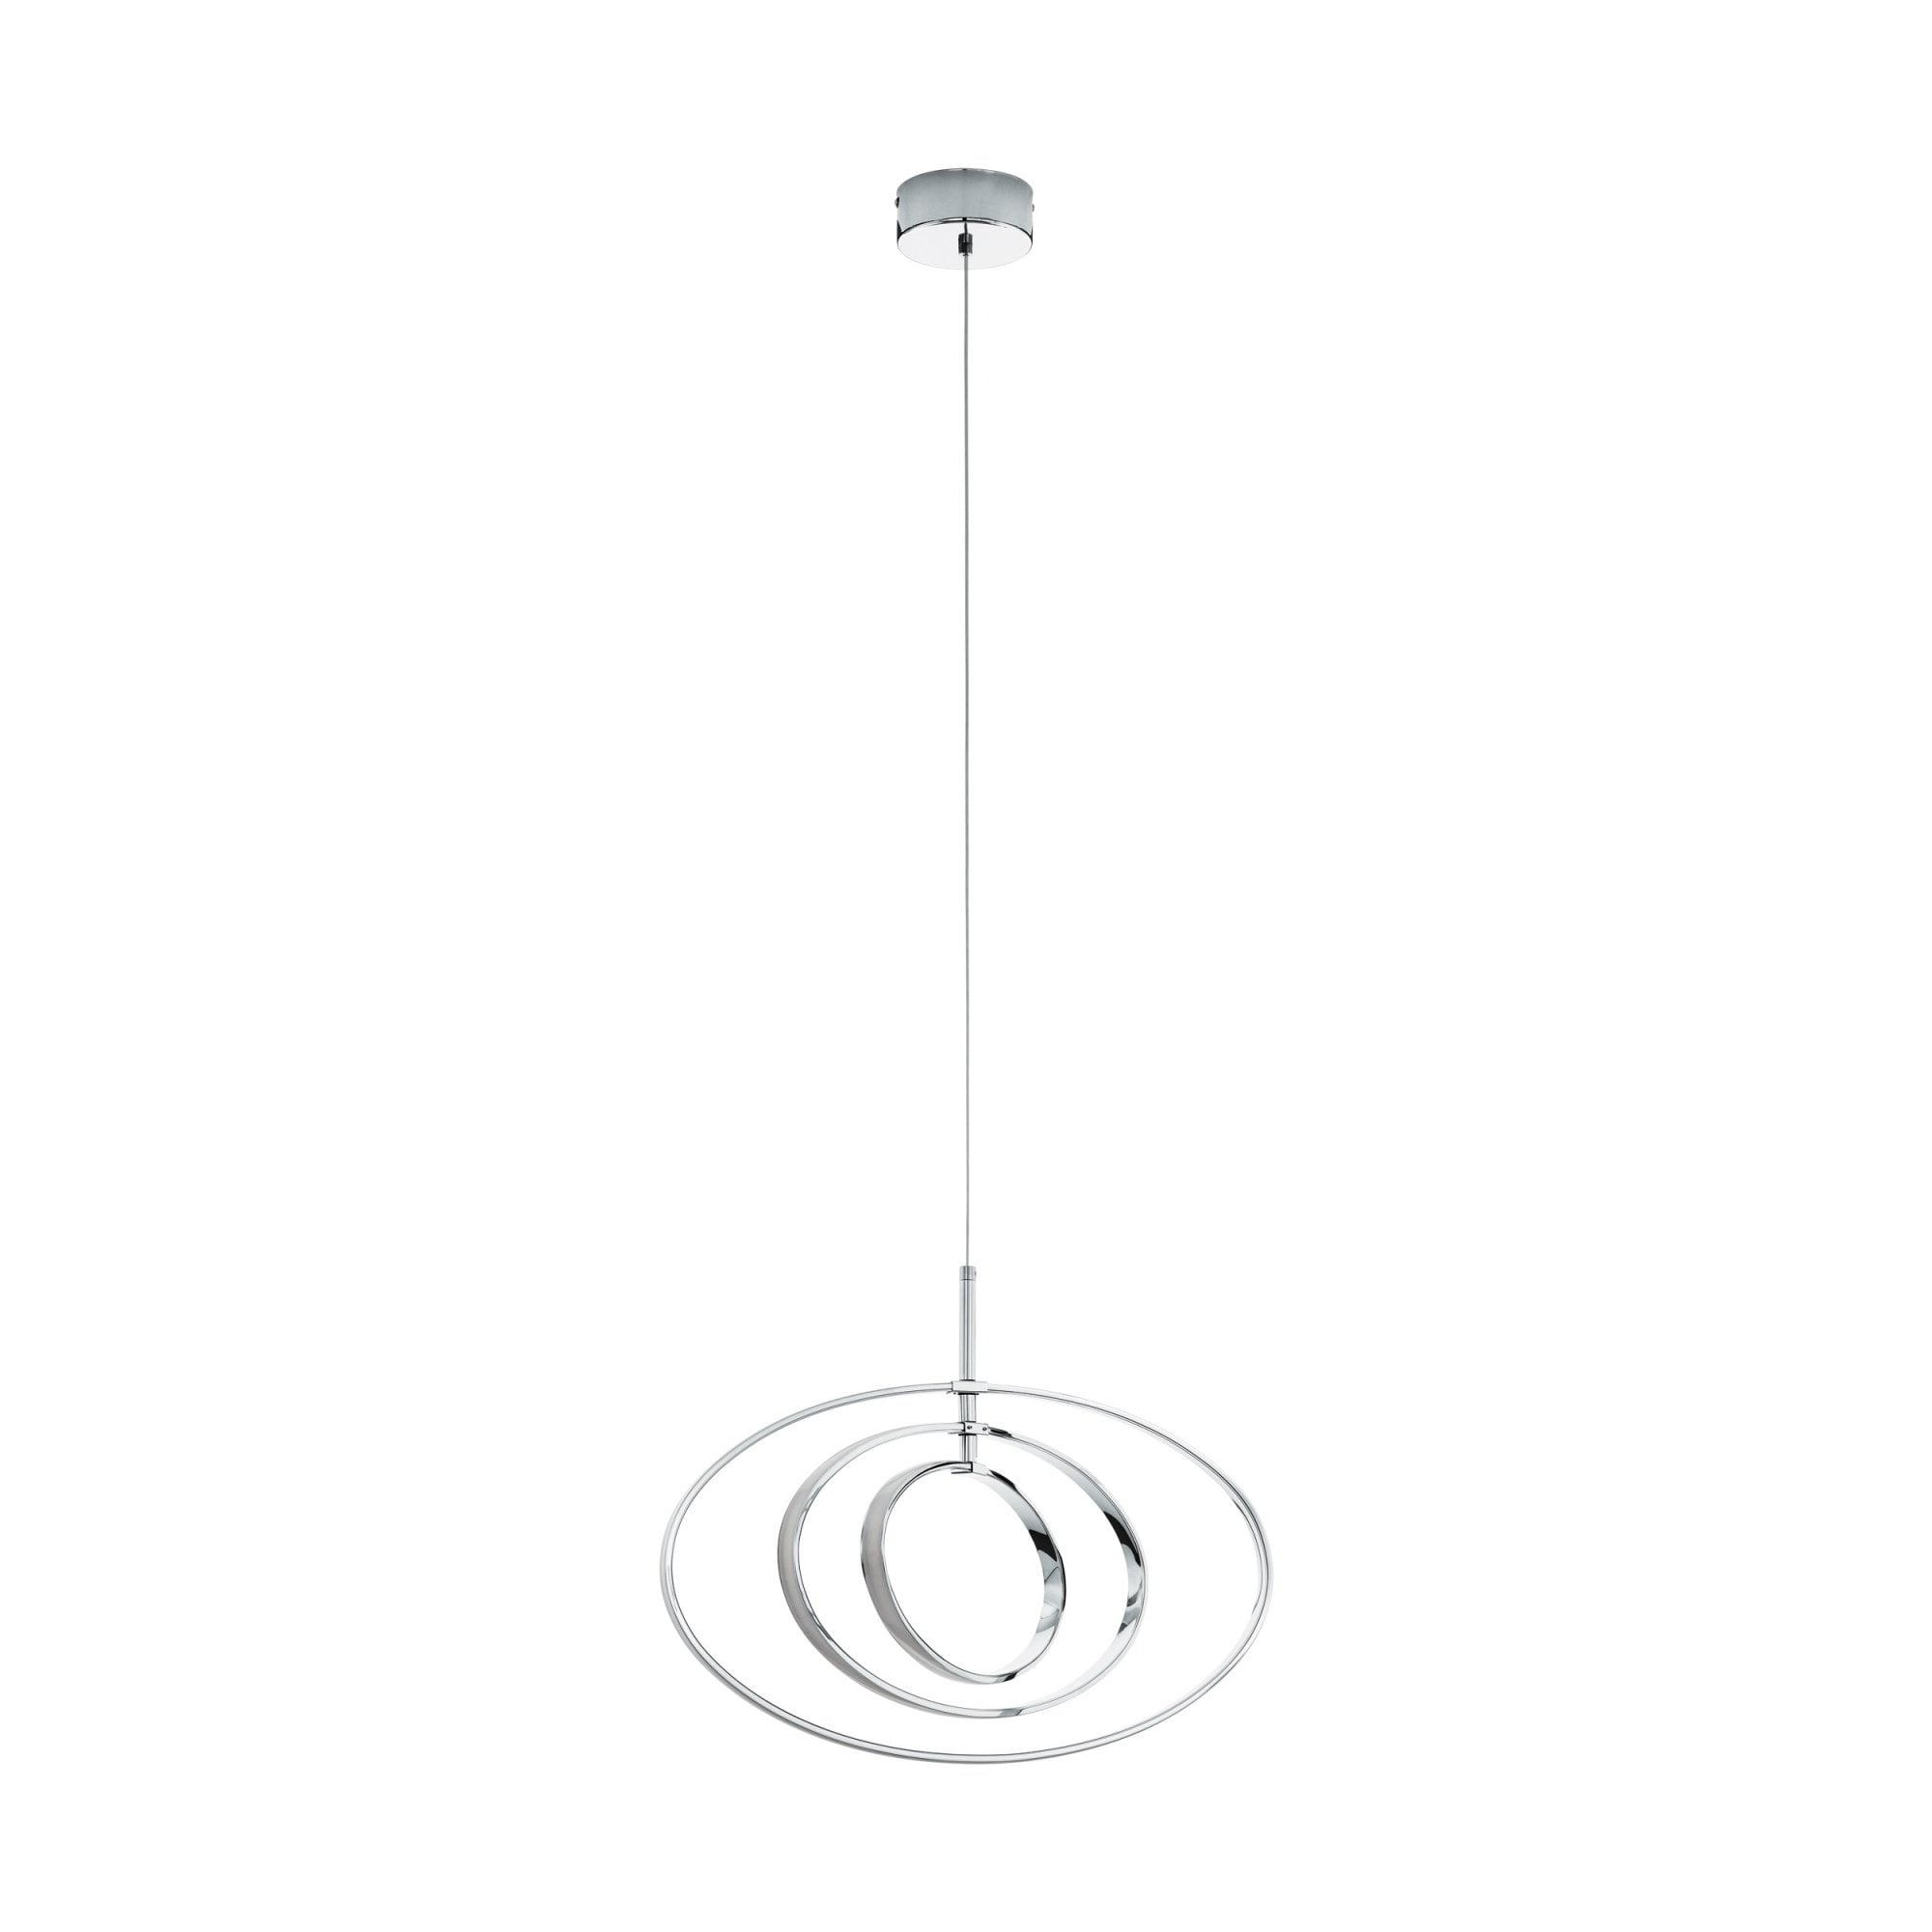 Eglo Lighting Pausia Modern Led Ceiling Pendant Light In Polished Chrome Finish 97435 Lighting From The Home Lighting Centre Uk